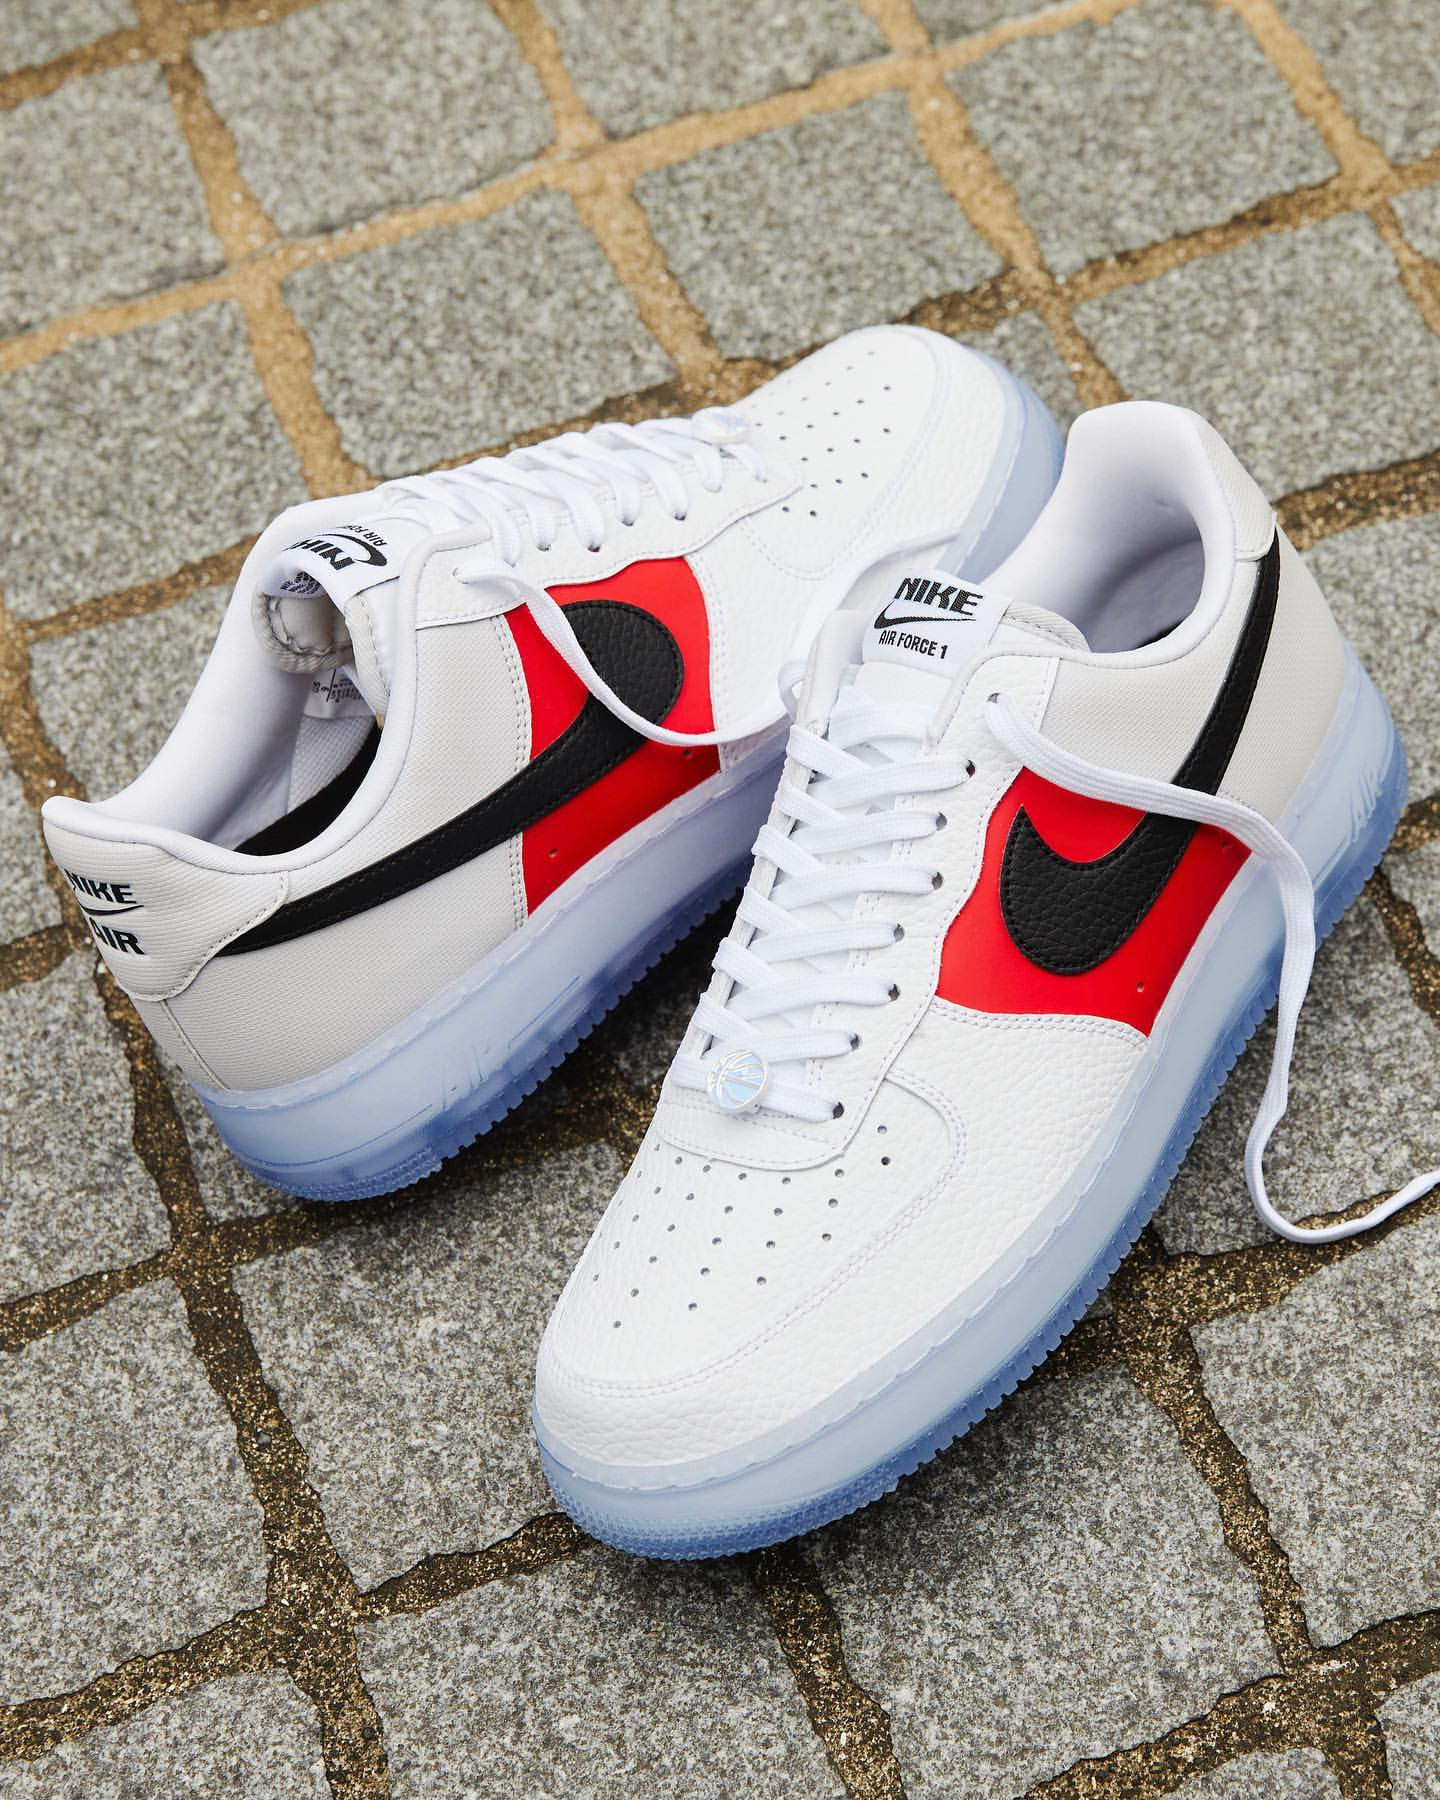 NIKE AIR FORCE 1 '07 LV8 EMB (CT2295-110)